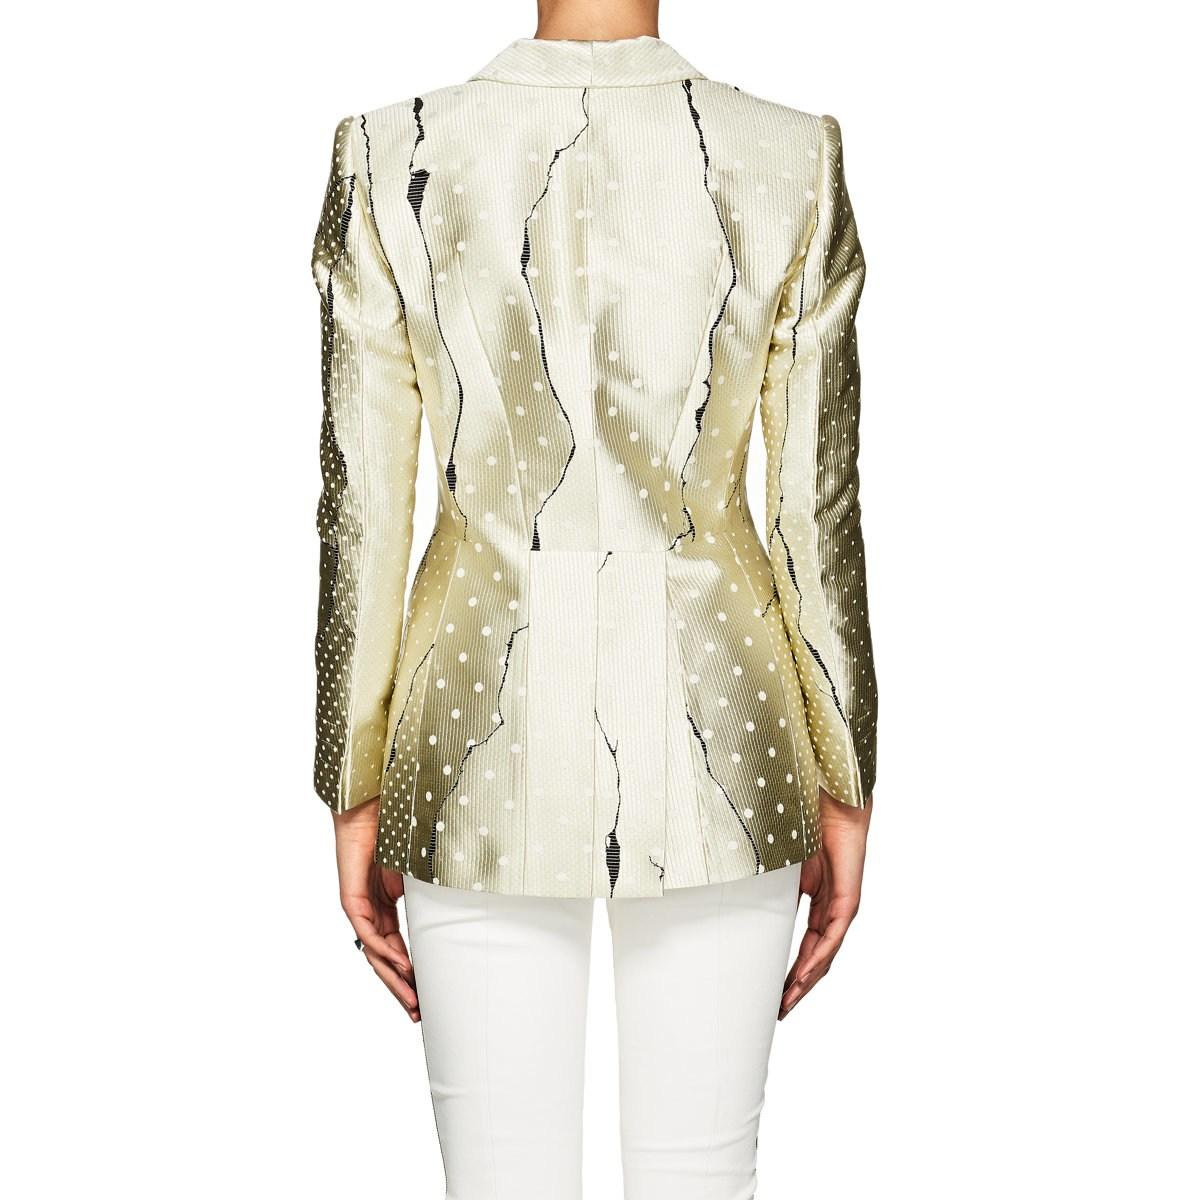 d07ea3da16138 Haider Ackermann - Yellow Abstract Jacquard Hourglass Blazer - Lyst. View  fullscreen